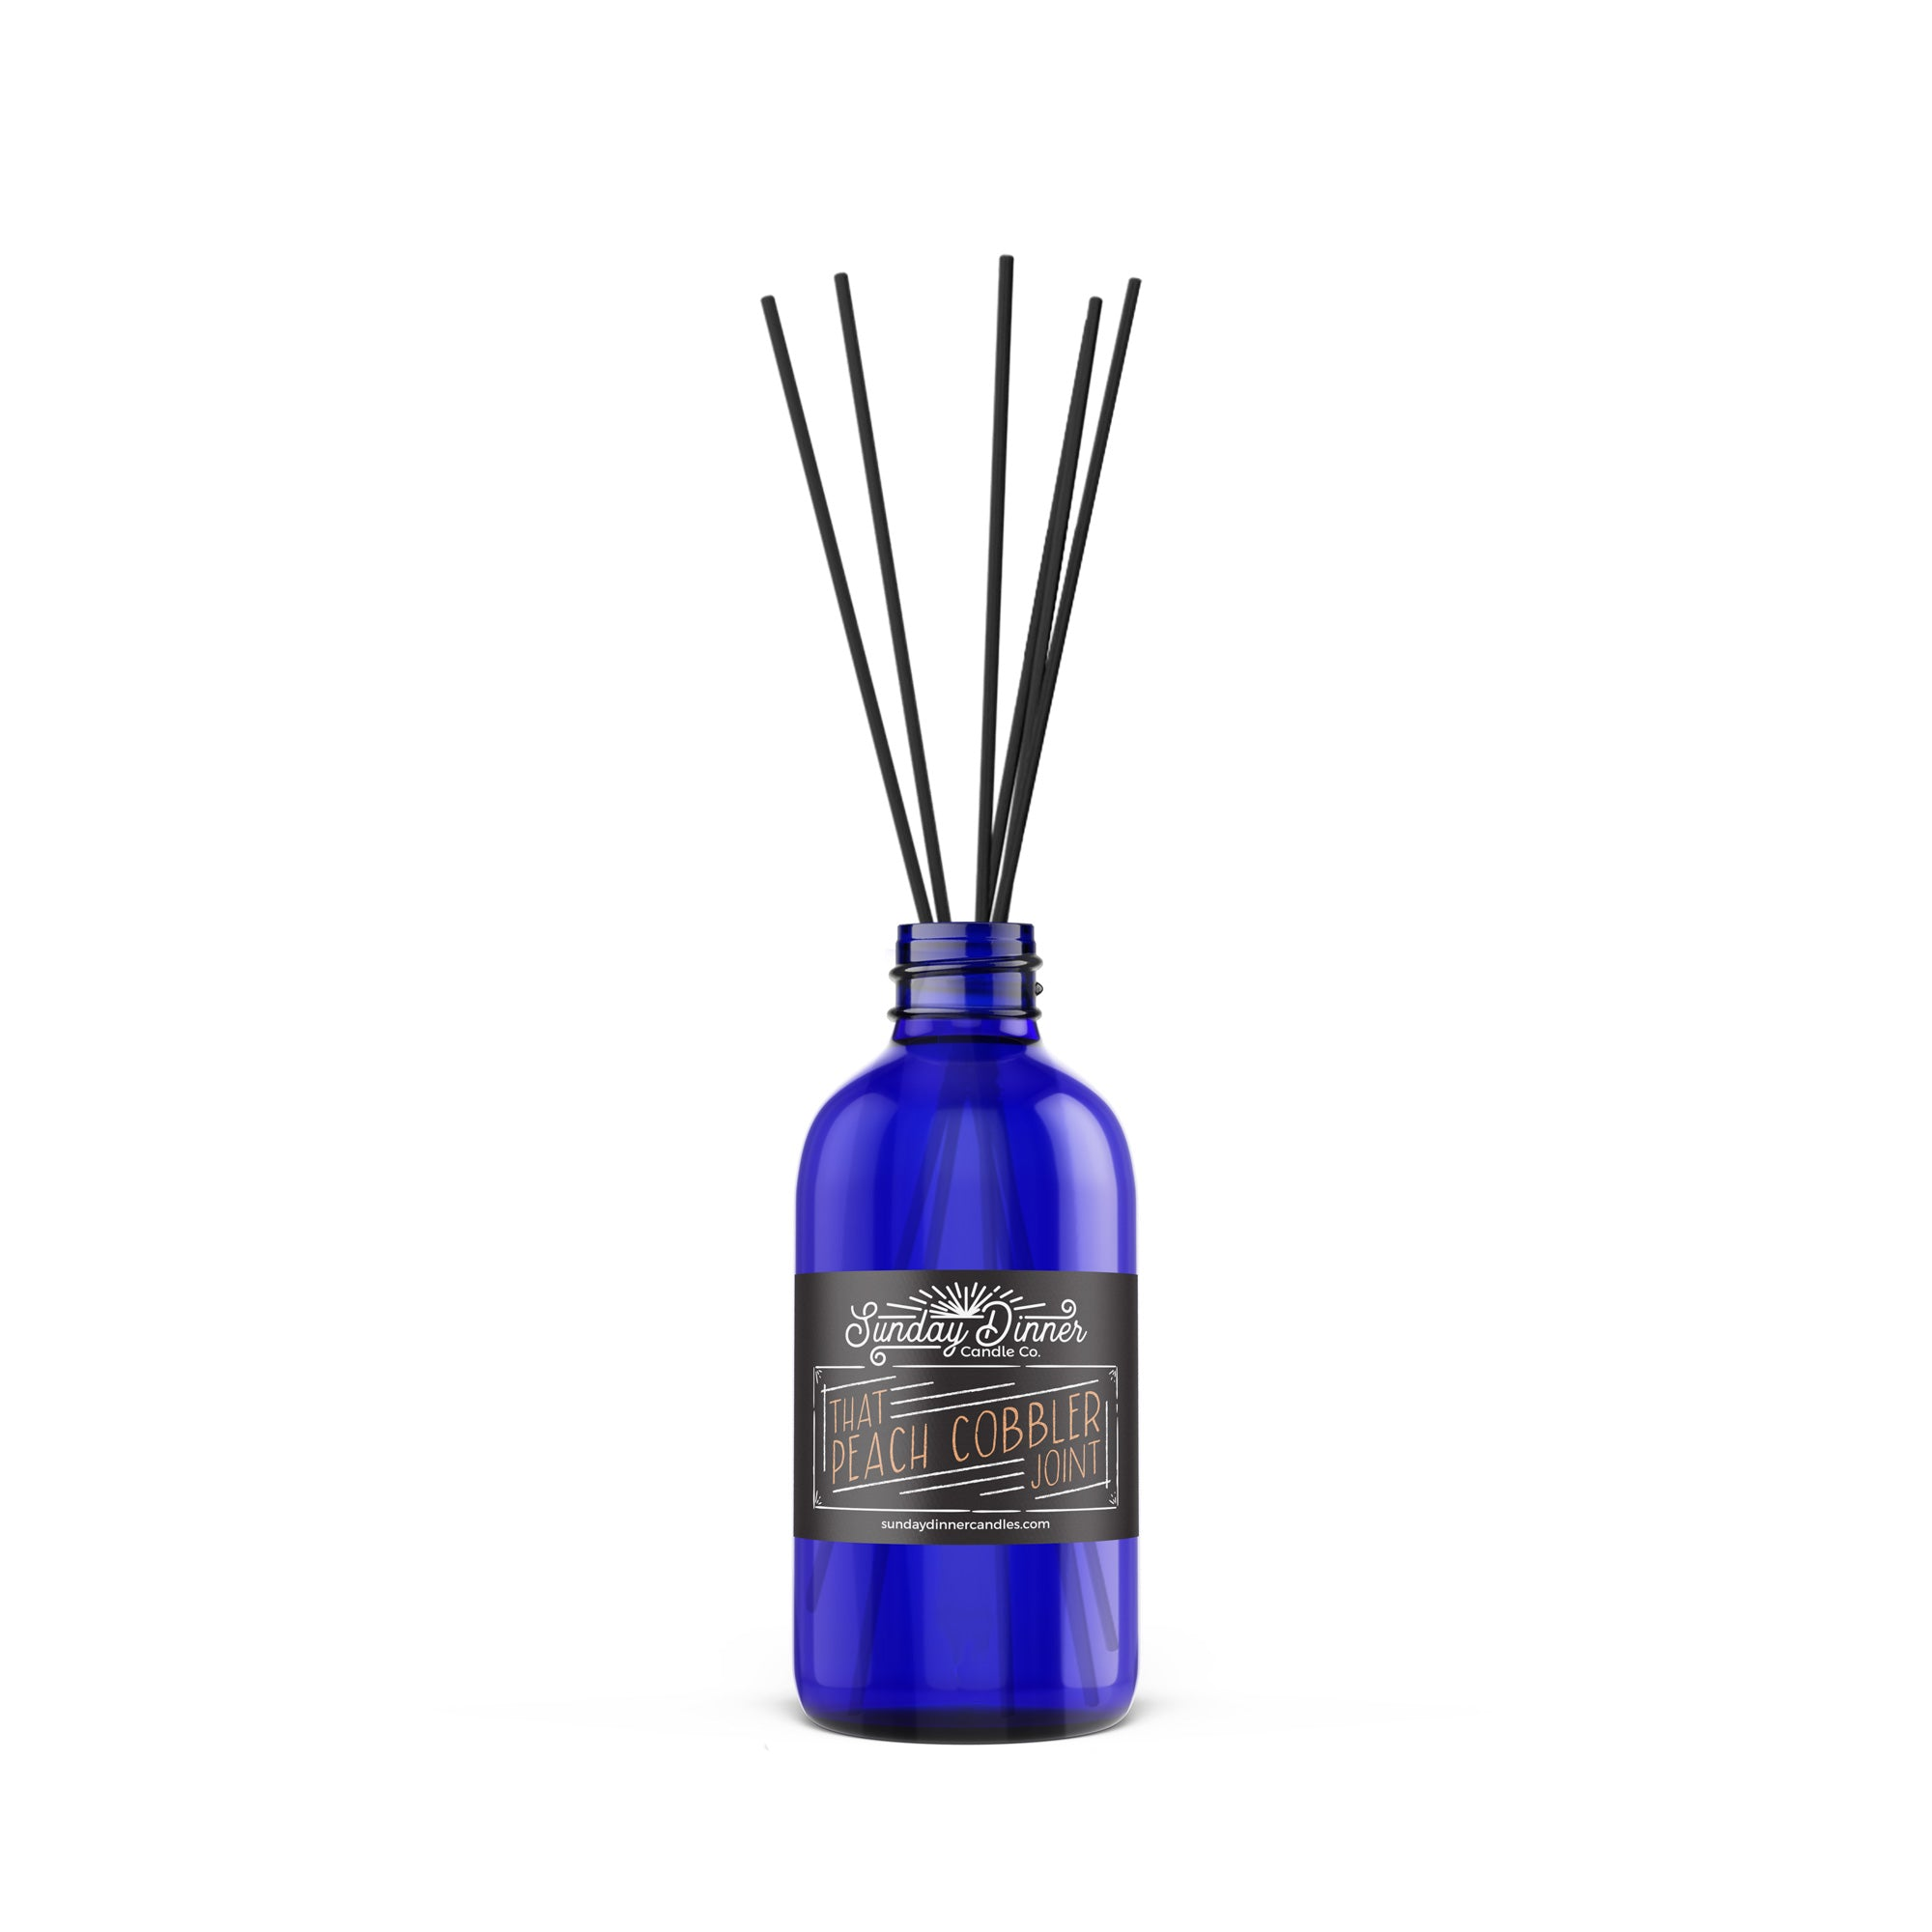 That Peach Cobbler Joint Reed Diffuser